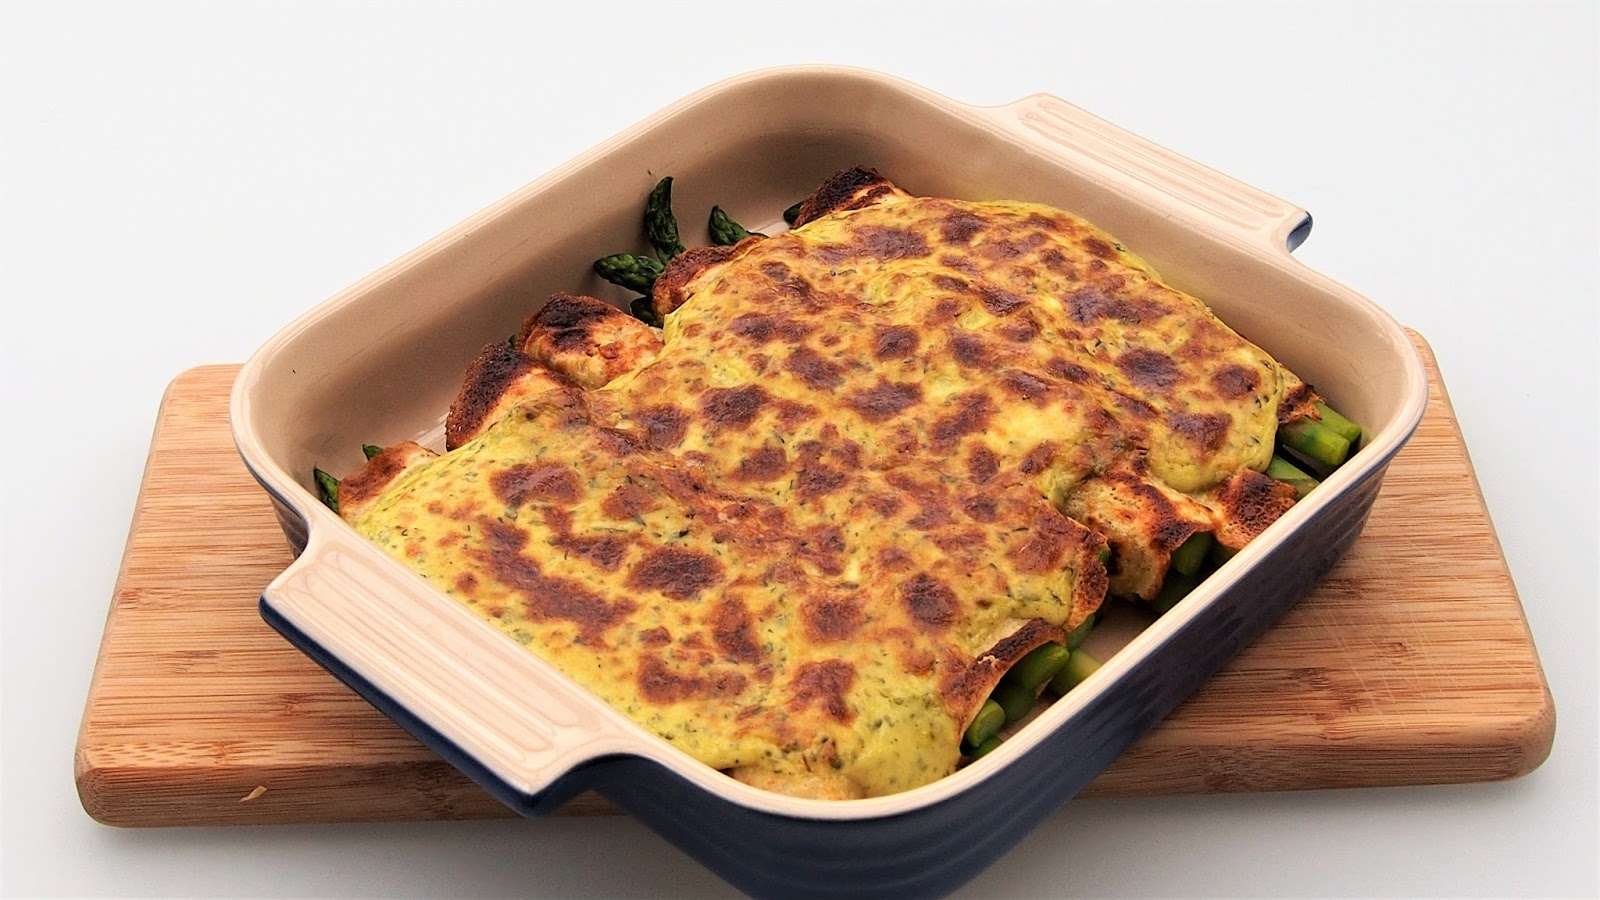 500g Cooked Asparagus (blanch In Boiling Water For 3 Minutes And Plunge  Into Cold Water And Allow To Cool 200g Sliced Ham 5 Pancakes